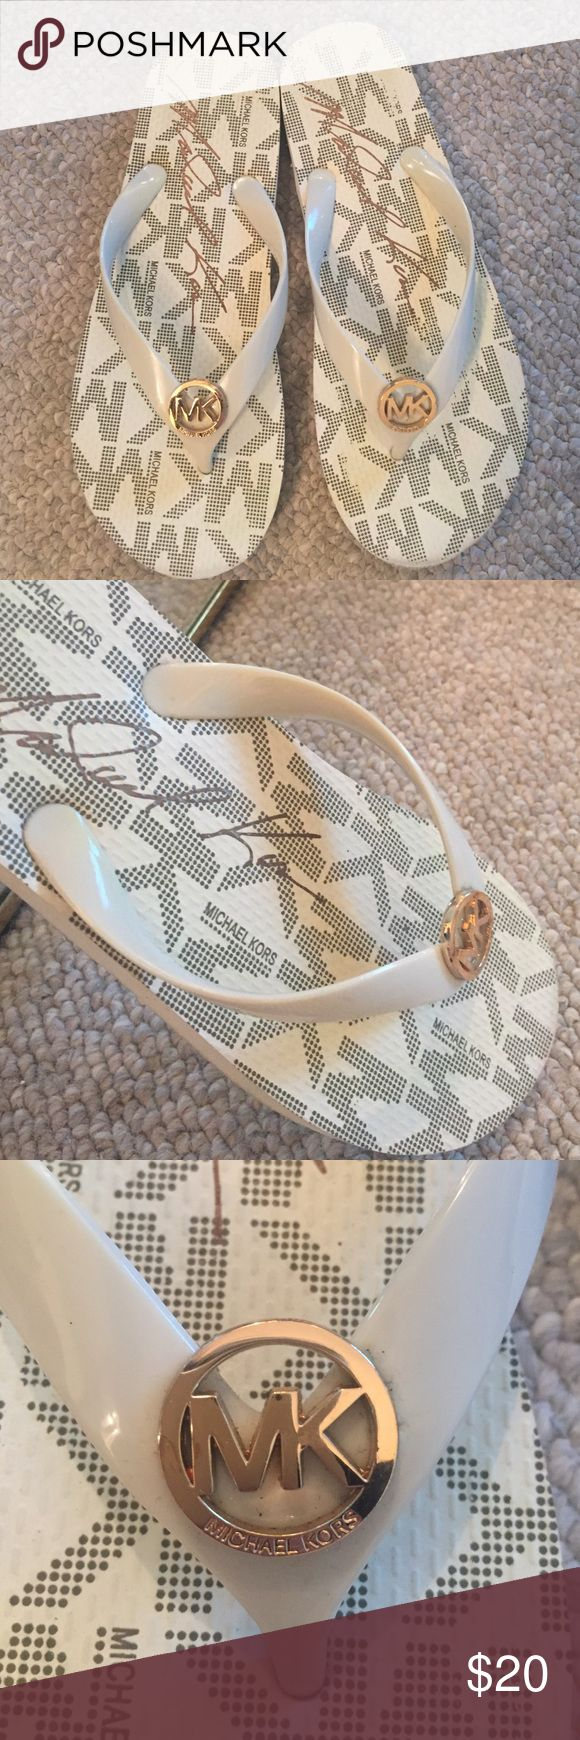 Michael Kors flip-flops Cream and gold Michael Kors flip flops. Worn a few times, visible wear on bottoms, but otherwise in great condition. Open to offers! Michael Kors Shoes Sandals